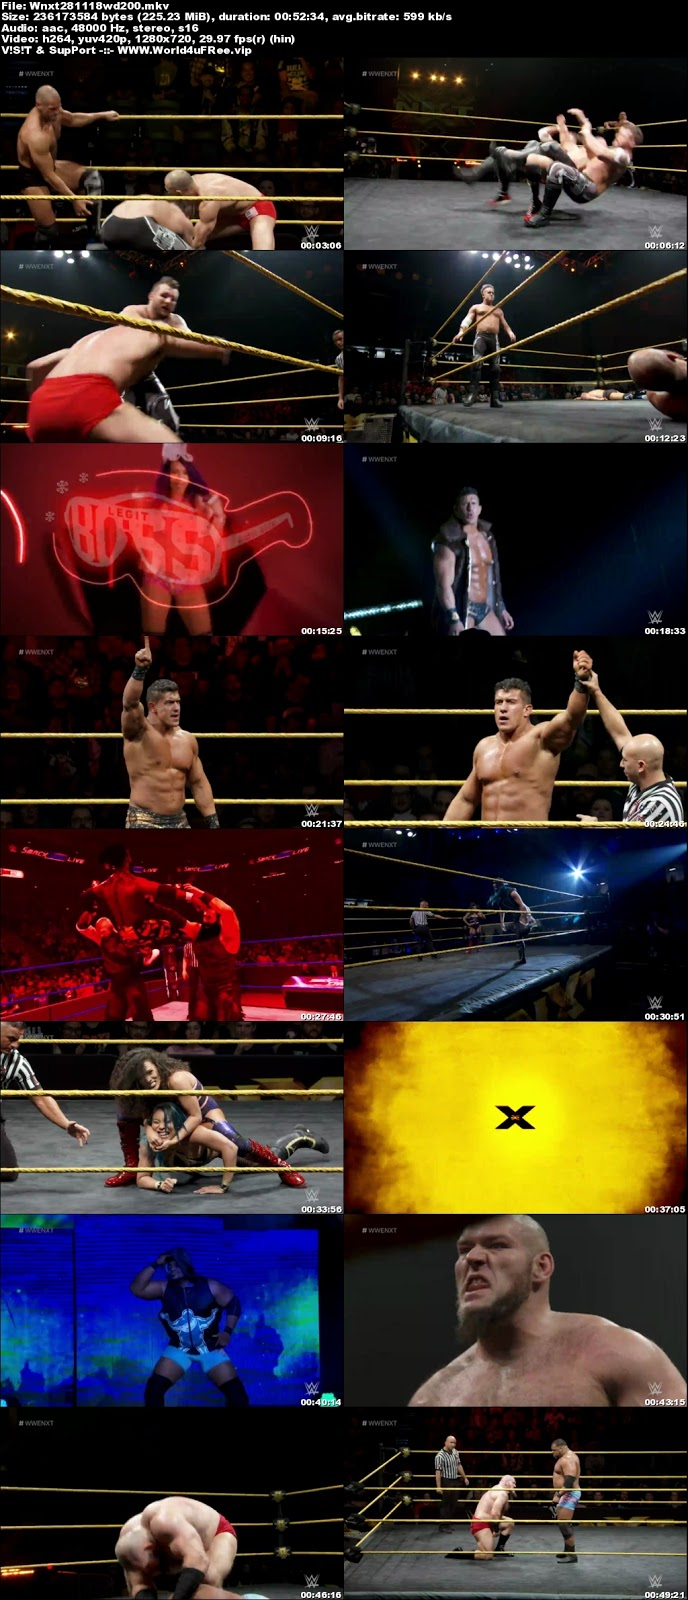 WWE NXT 21 November 2018 720p WEBRip 250MB x264 hollywood tv show wwe show WWE NXT 26 April 2017 200mb compressed small size free download or watch online at world4ufree.vip